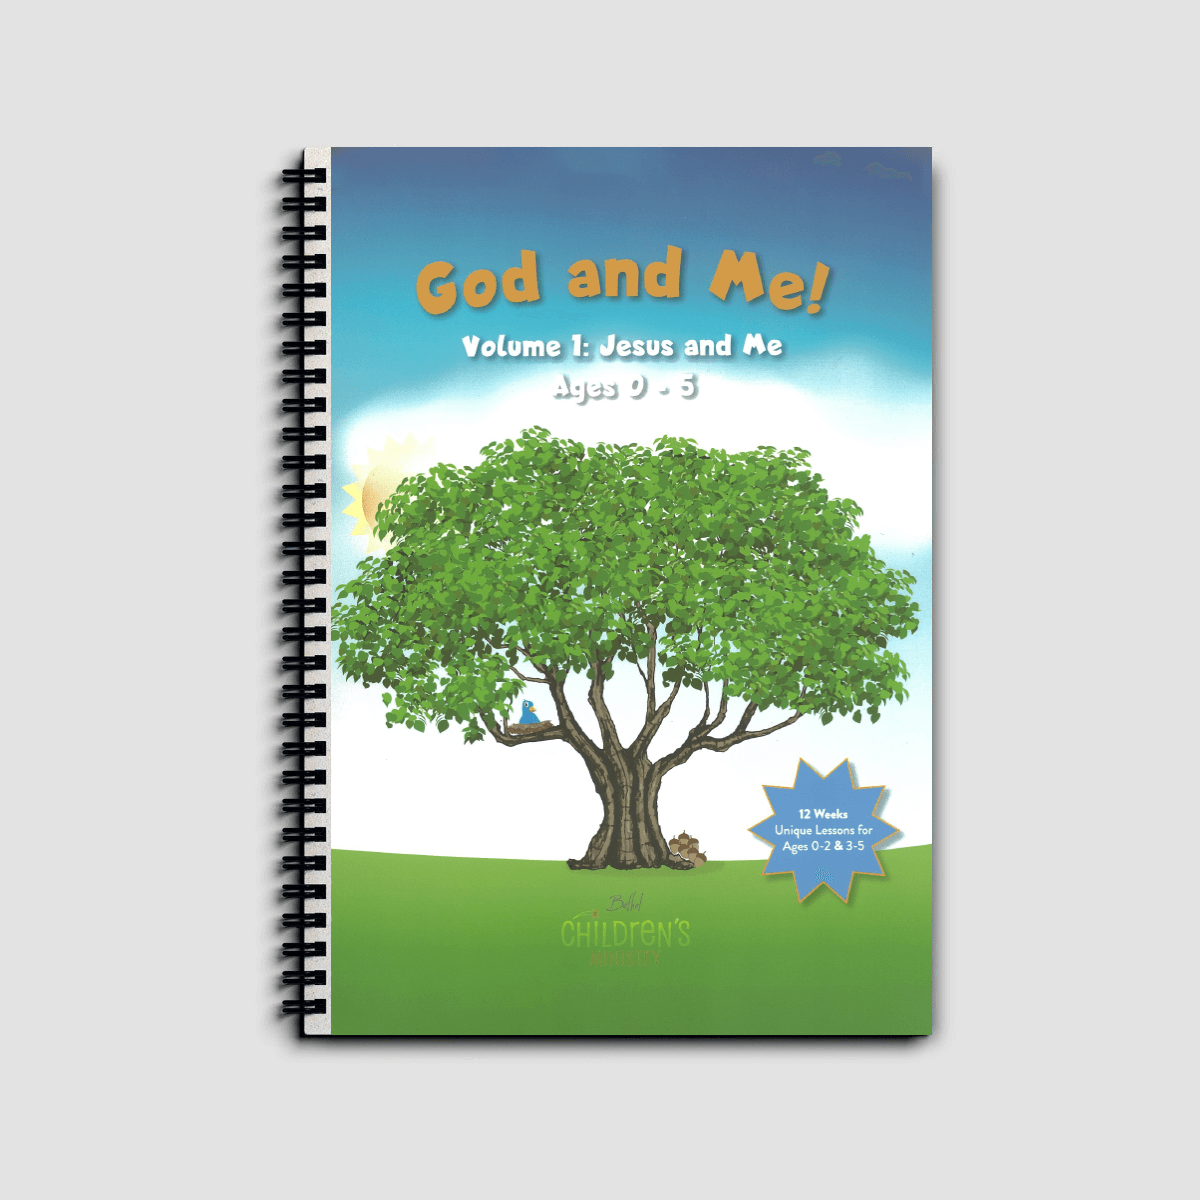 God and Me Volume 1